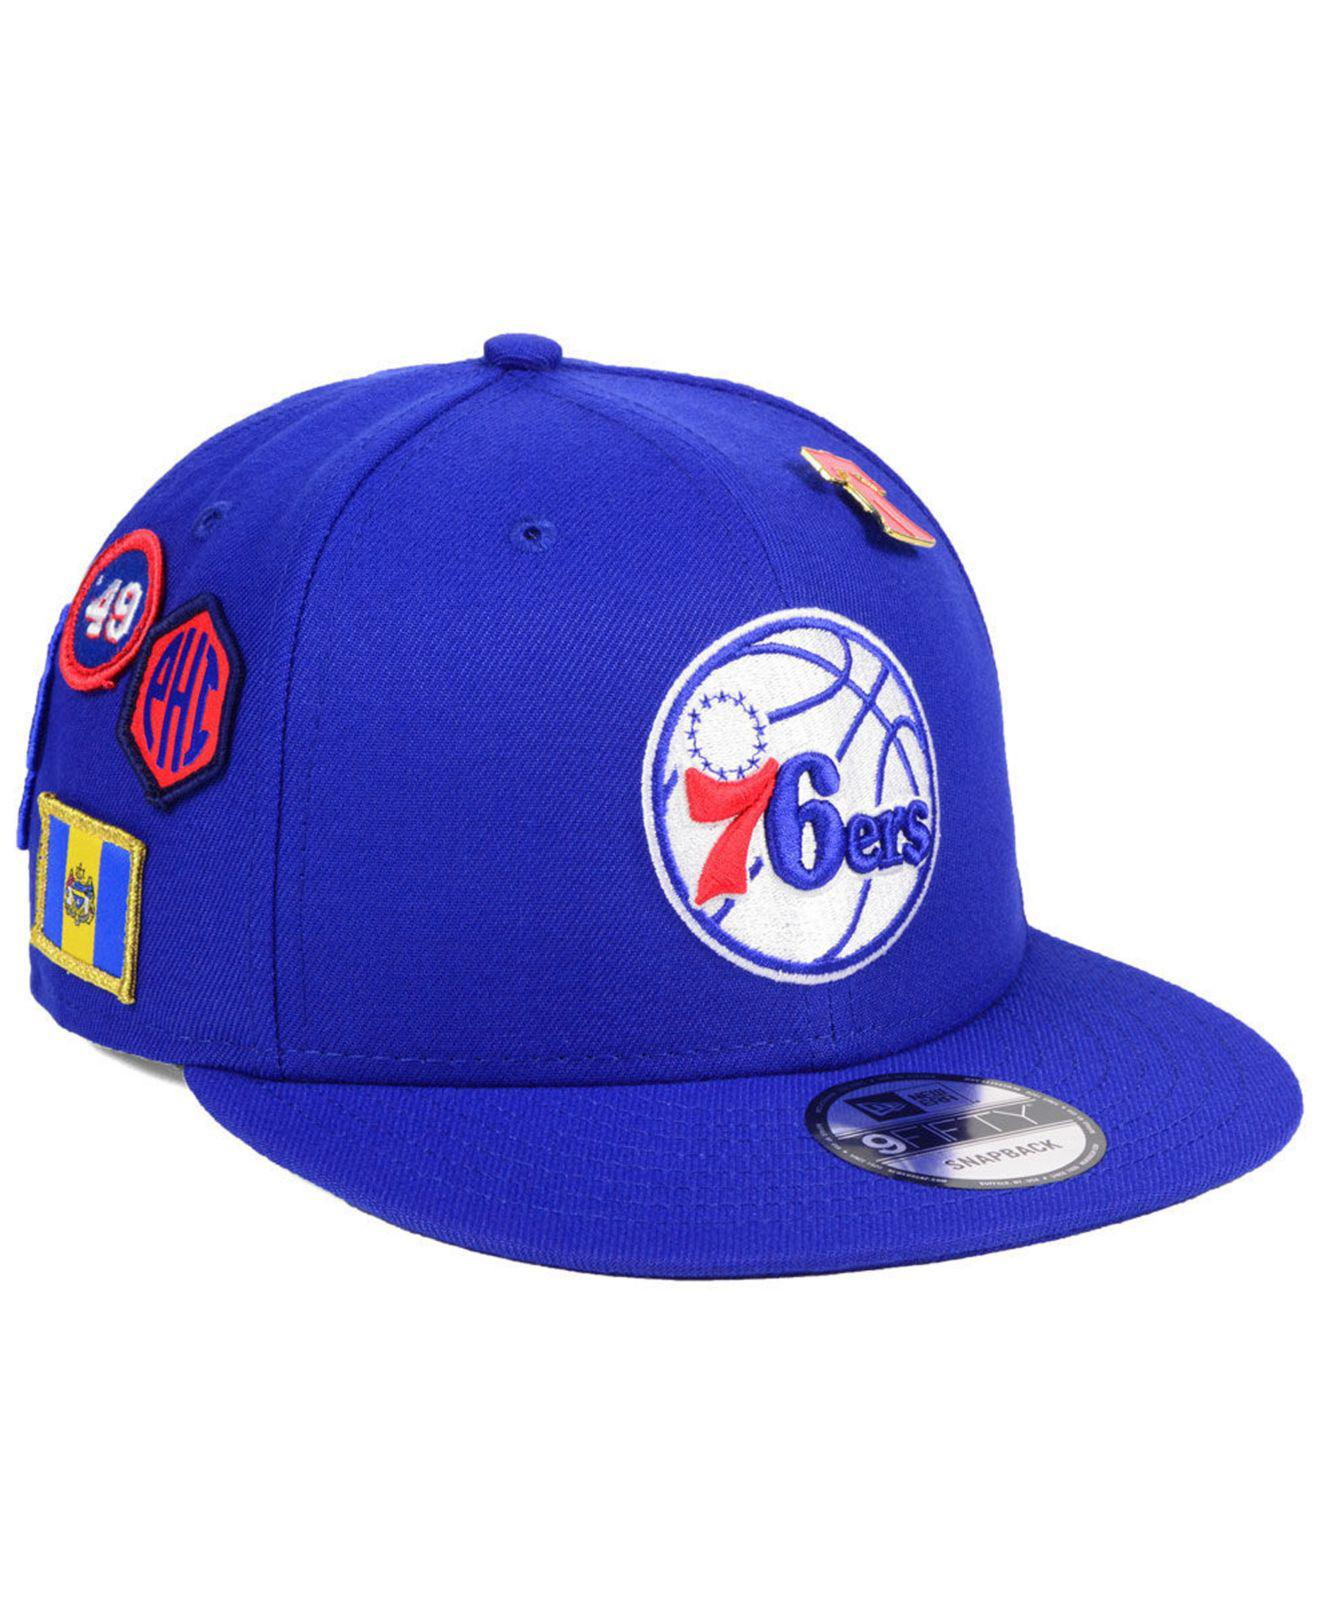 new product eece6 9b7d4 Lyst - Ktz Philadelphia 76ers On-court Collection 9fifty Snapback ...